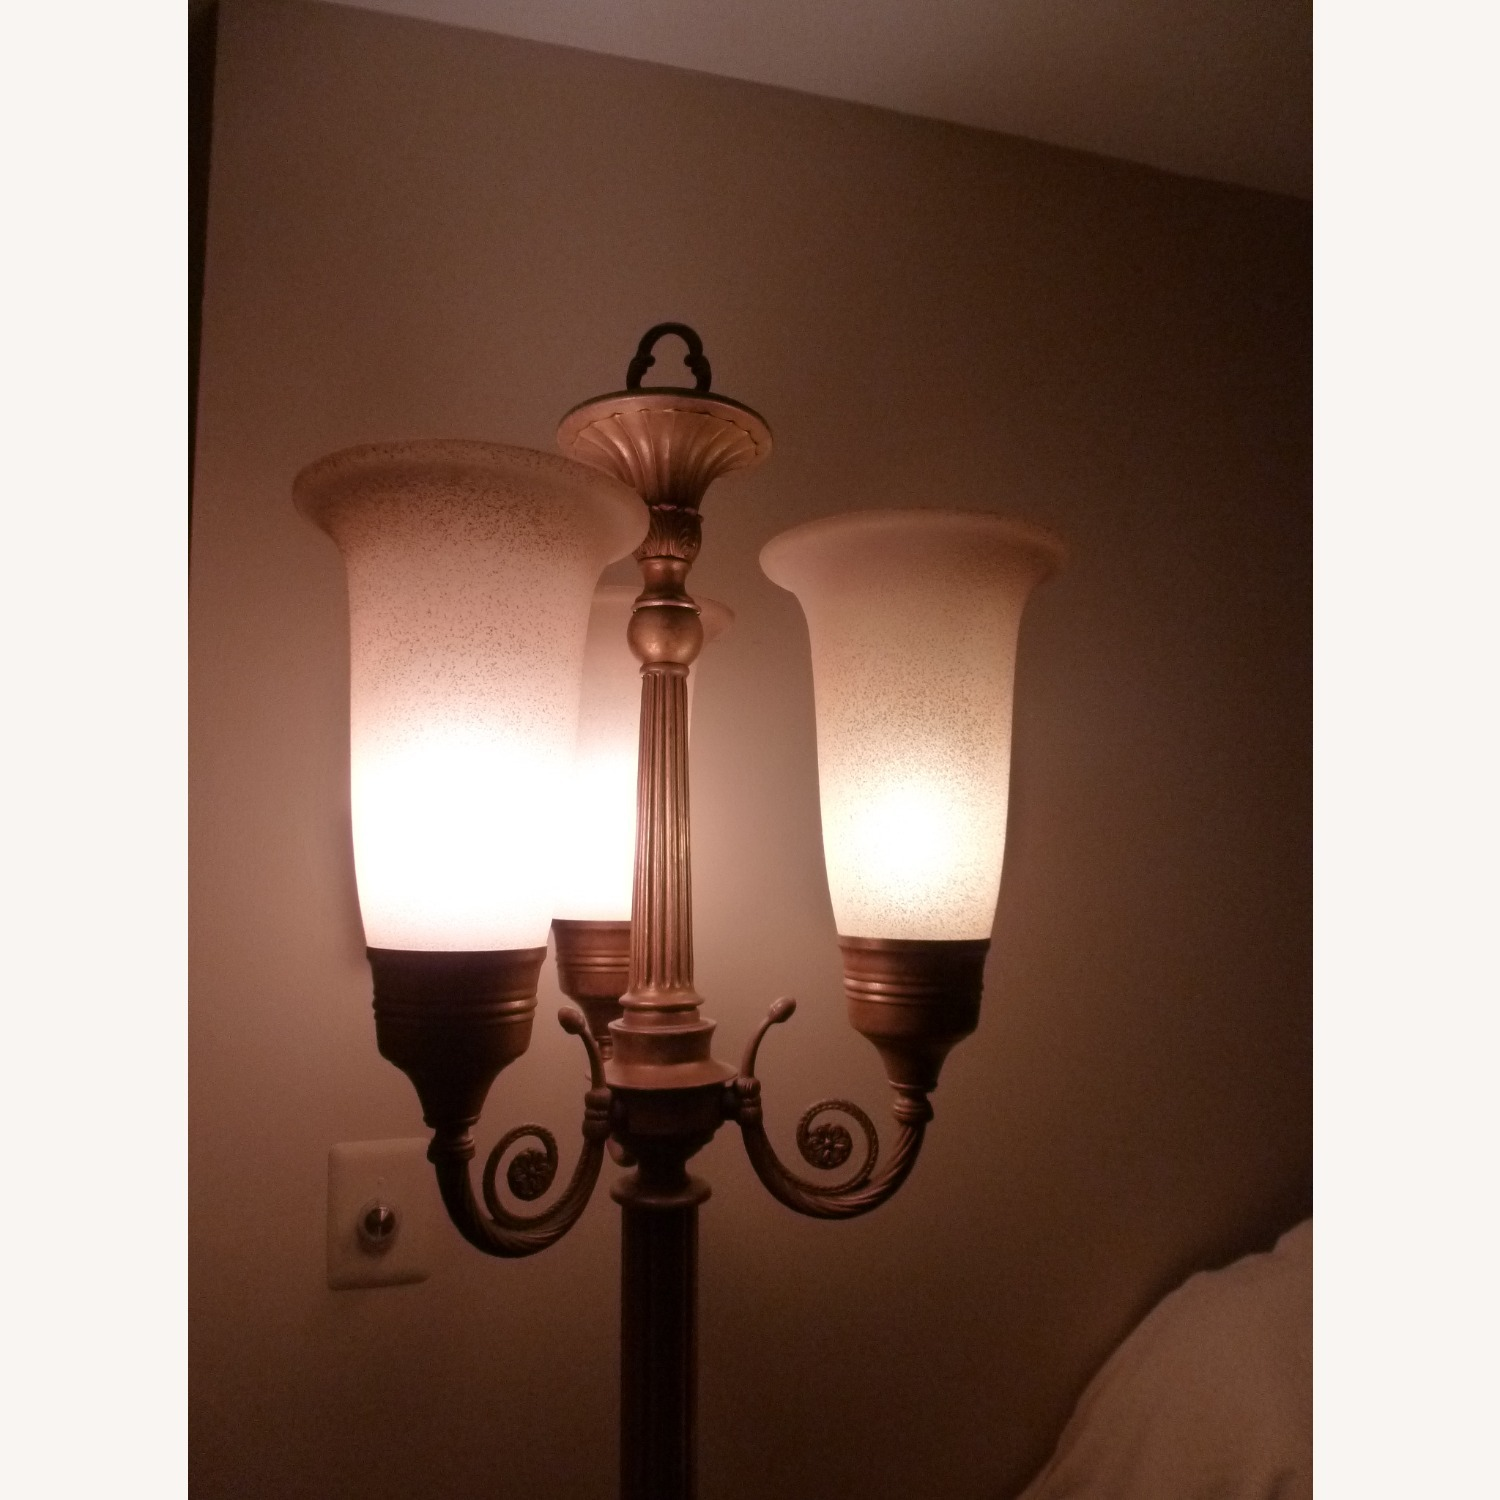 Gold tone Floor Lamp w/3 Lights and Dimmer Switch - image-3